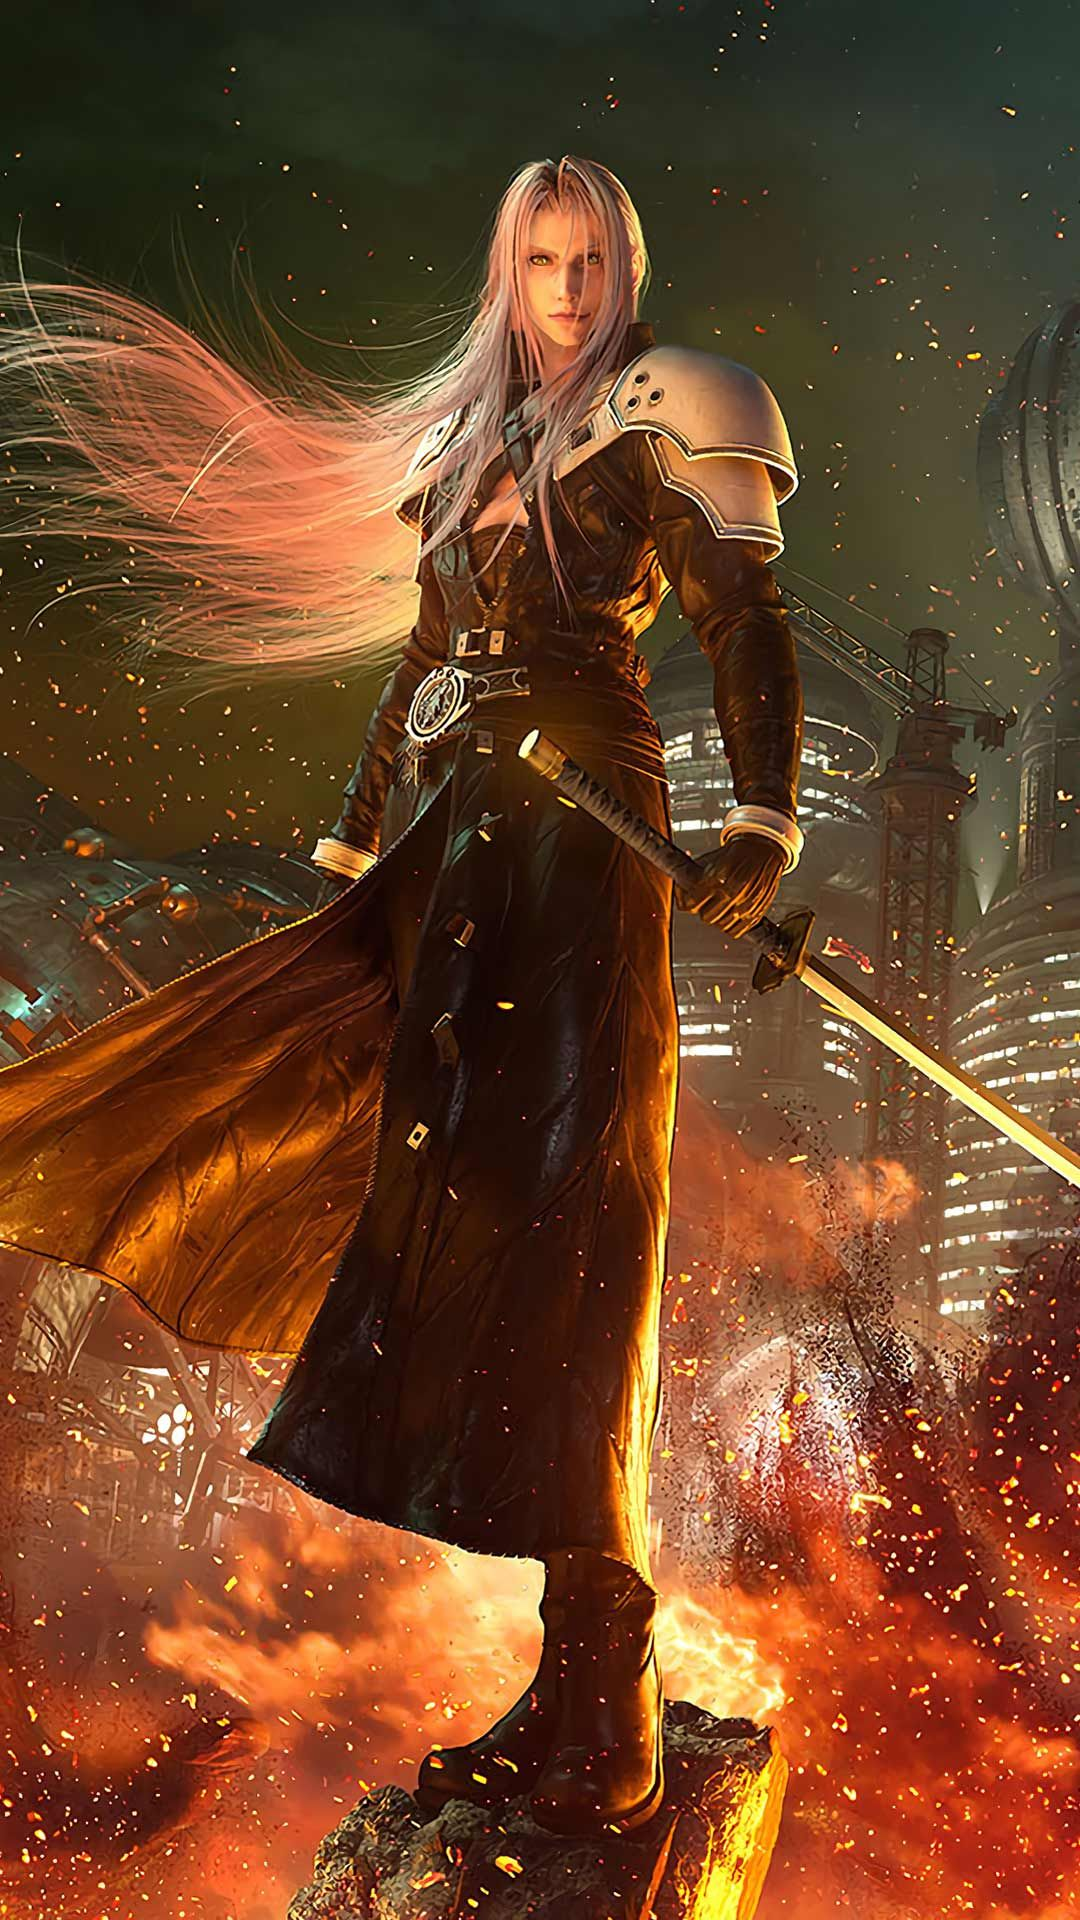 Final Fantasy 7 Remake Wallpaper Hd Phone Backgrounds Ps4 Game Art Poster Logo On Iphone Android Final Fantasy Sephiroth Tifa Final Fantasy Final Fantasy Art